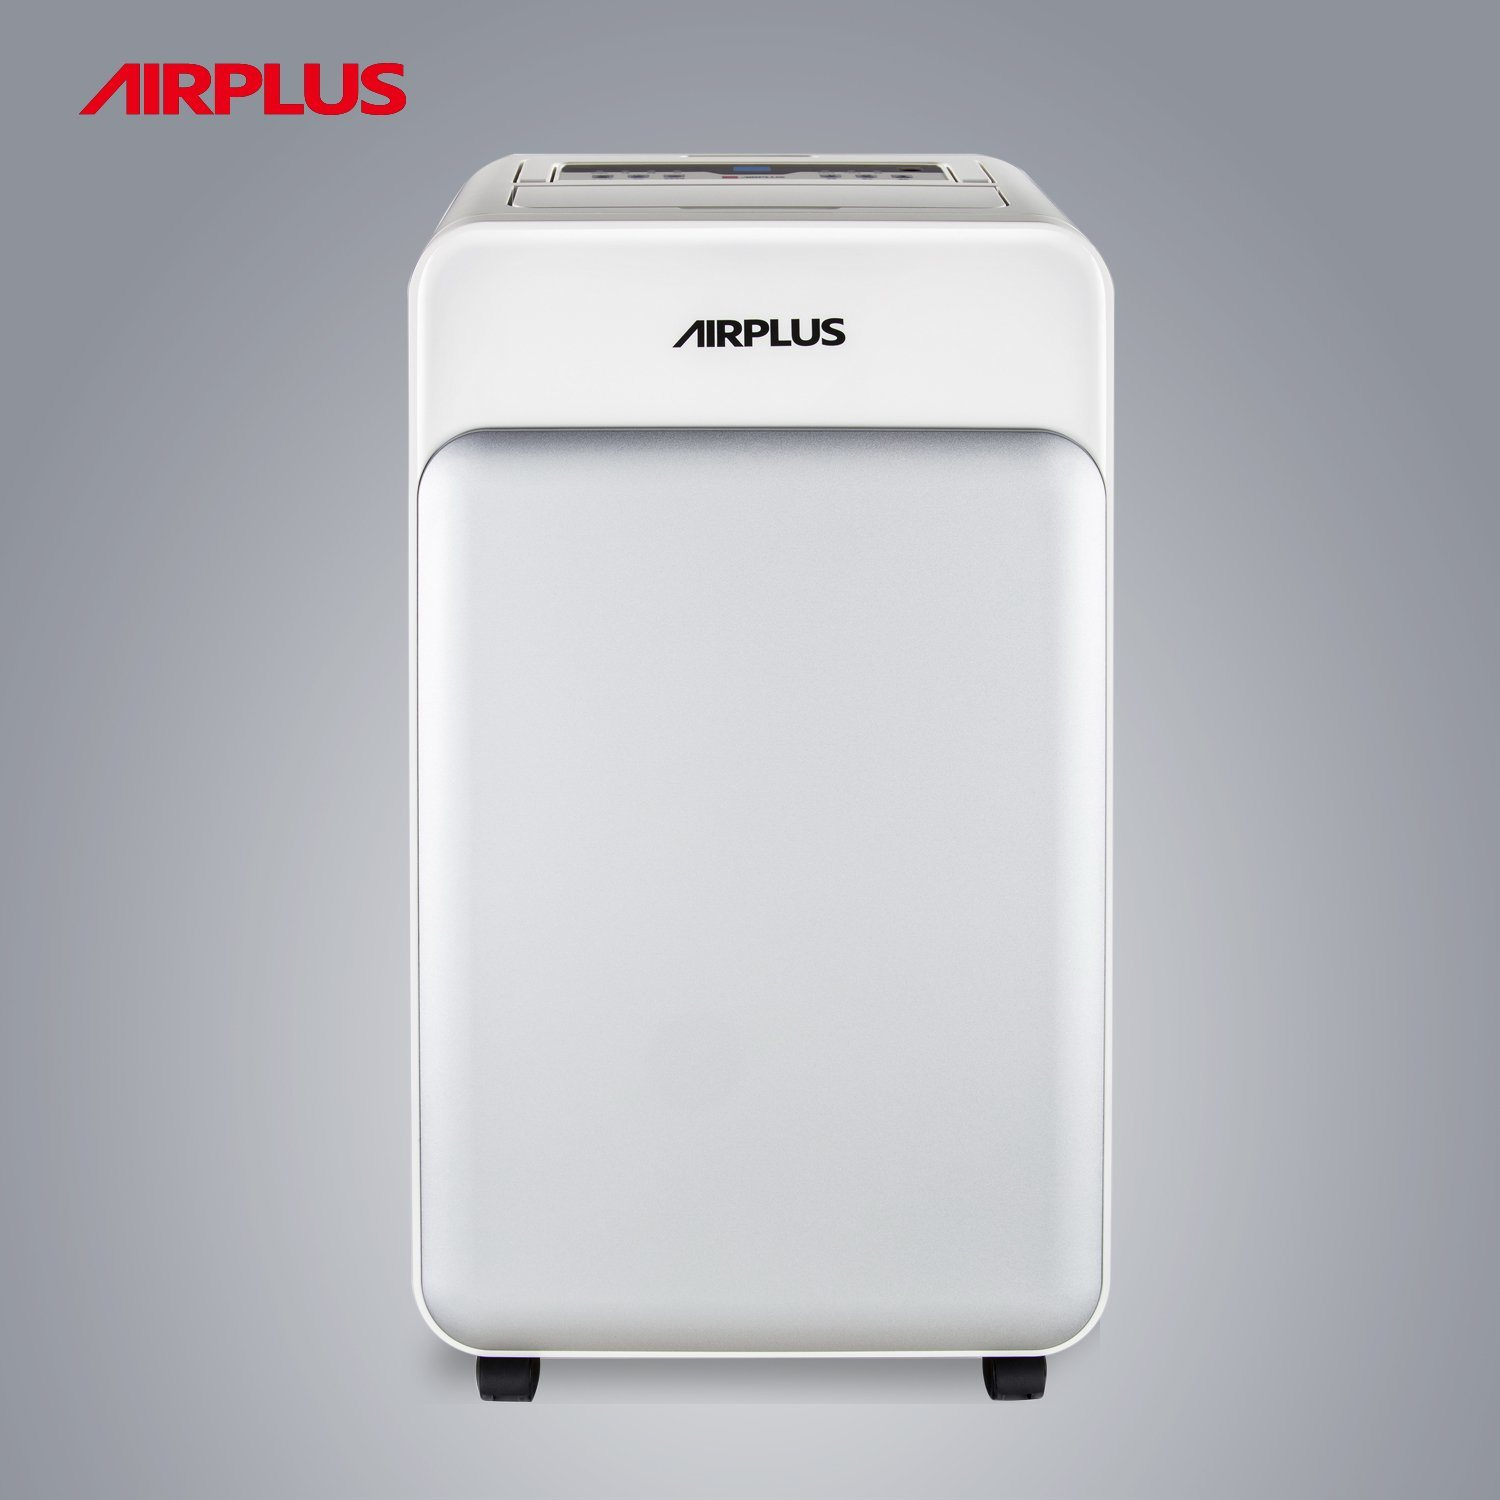 25L/Day Dehumidifier with R134A Refrigerant for Home